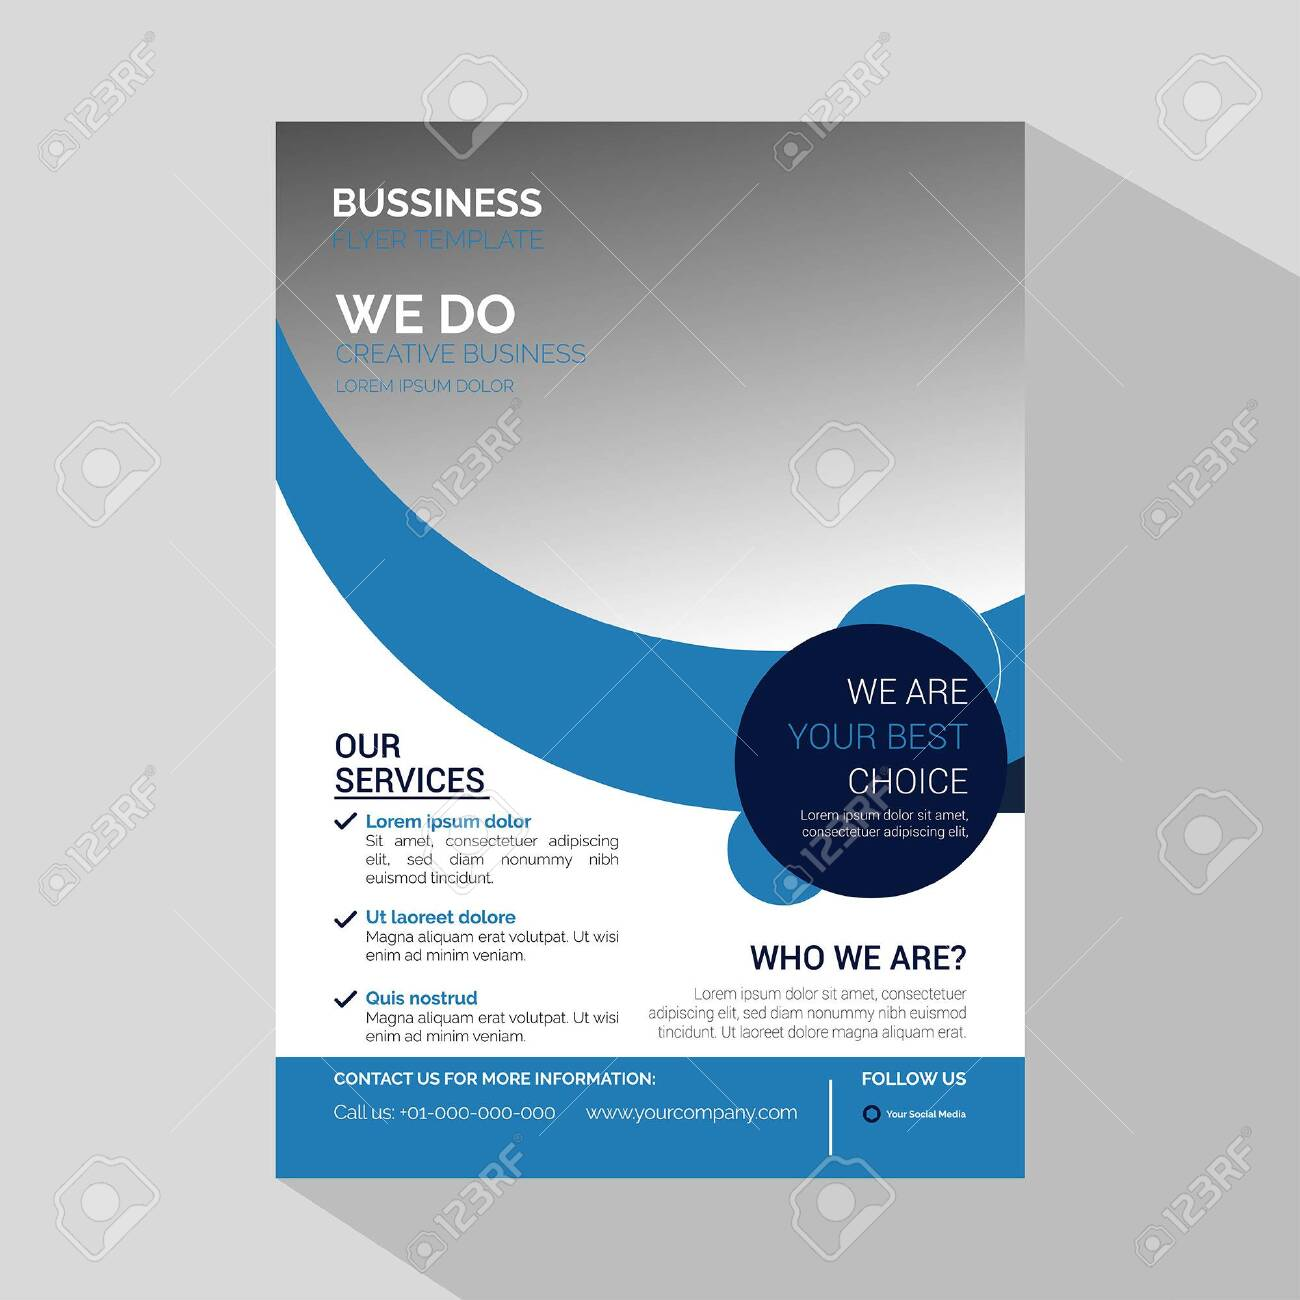 Modern Corporate Business Flyer & Corporate Business Template for Flyer - Vector - 130046739